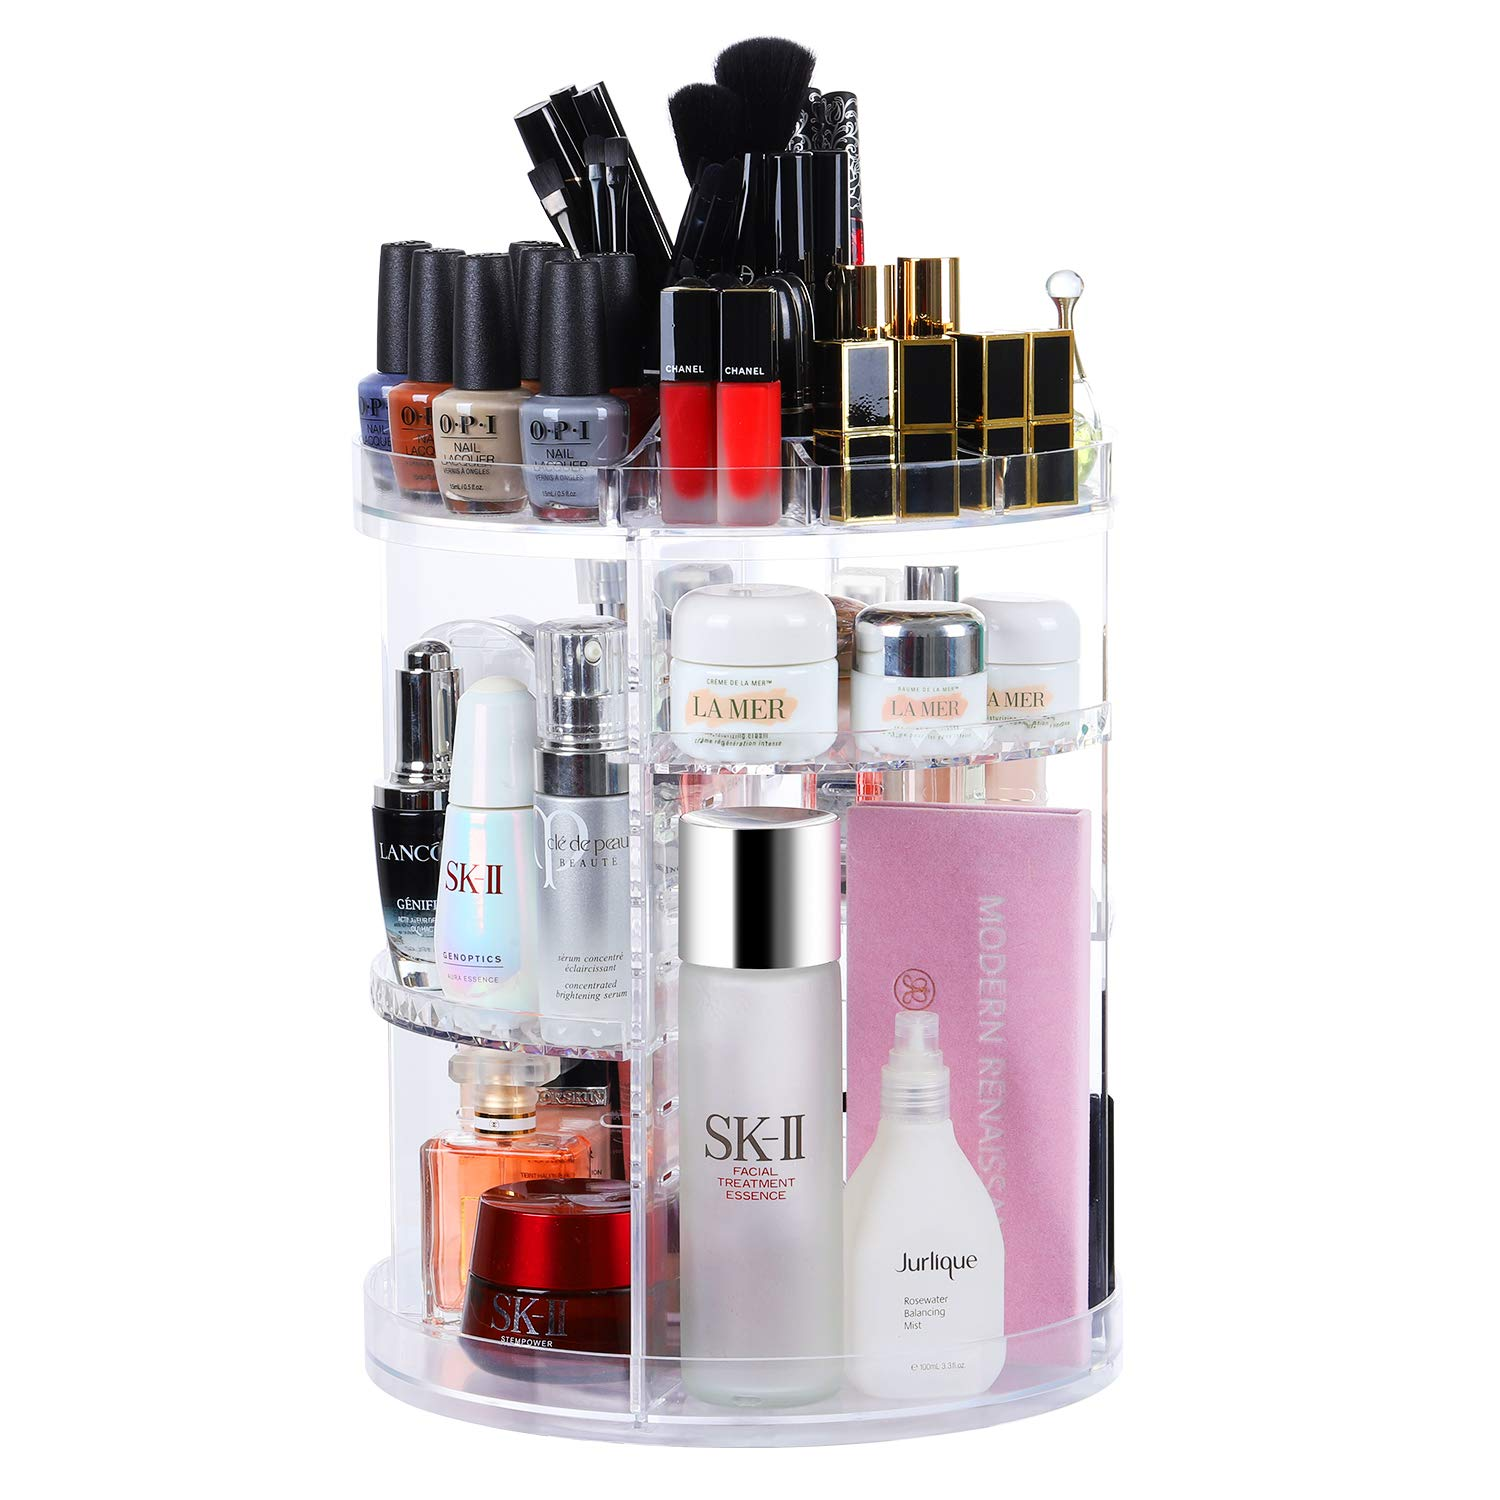 CECOLIC Rotating Makeup Organiser, 360 Degree Rotating Adjustable Cosmetic Storage Display Case with 8 Layers Large Capacity, Fits Creams, Makeup Brushes, Lipsticks and More, Clear Transparent